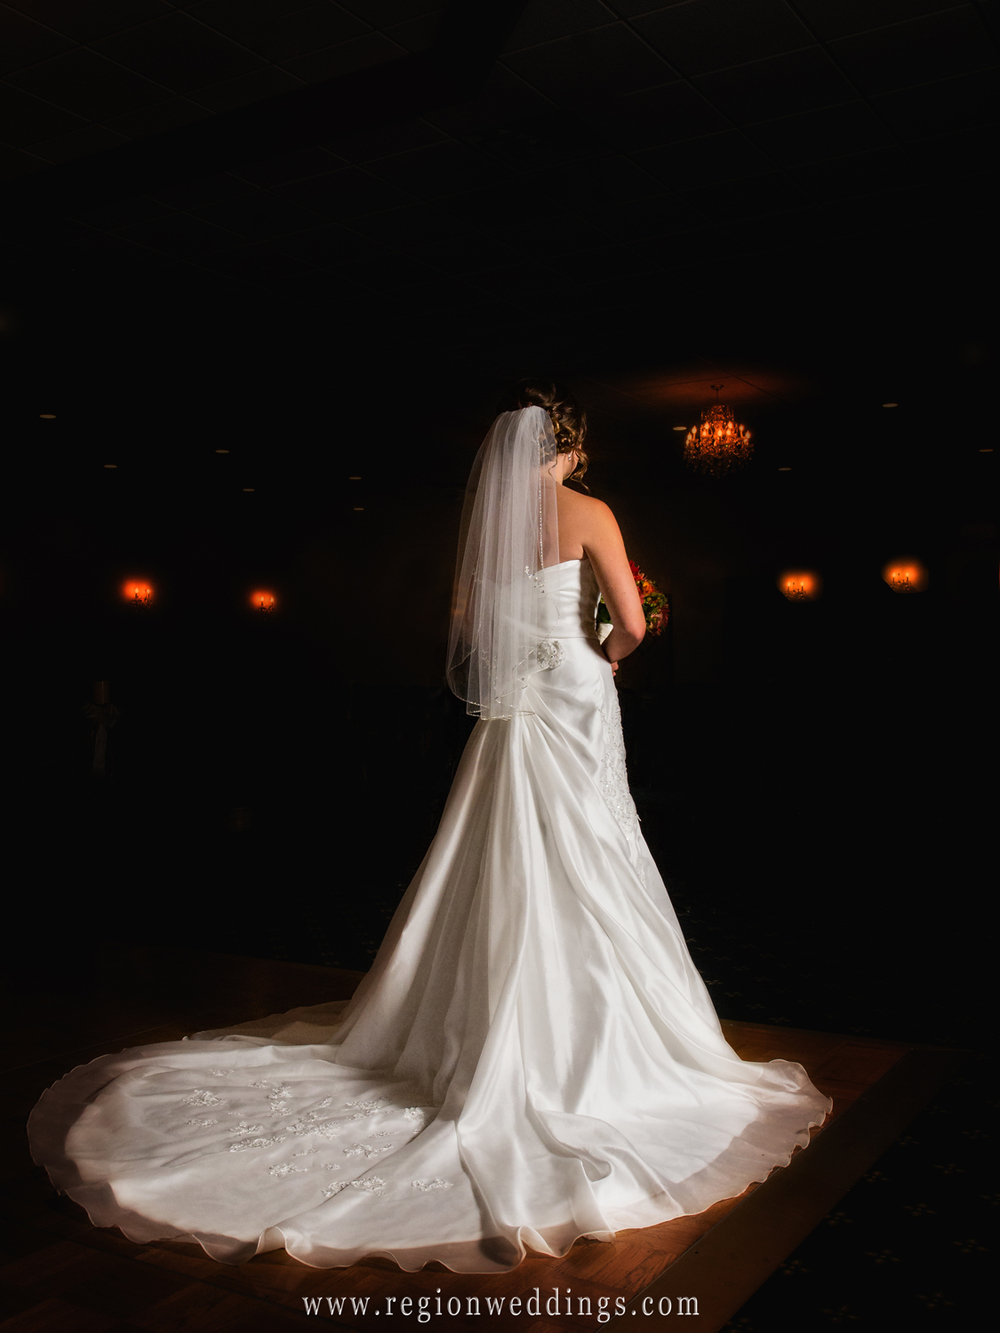 The bride shows off the back of her dress in a darkened room with orange hued candles.